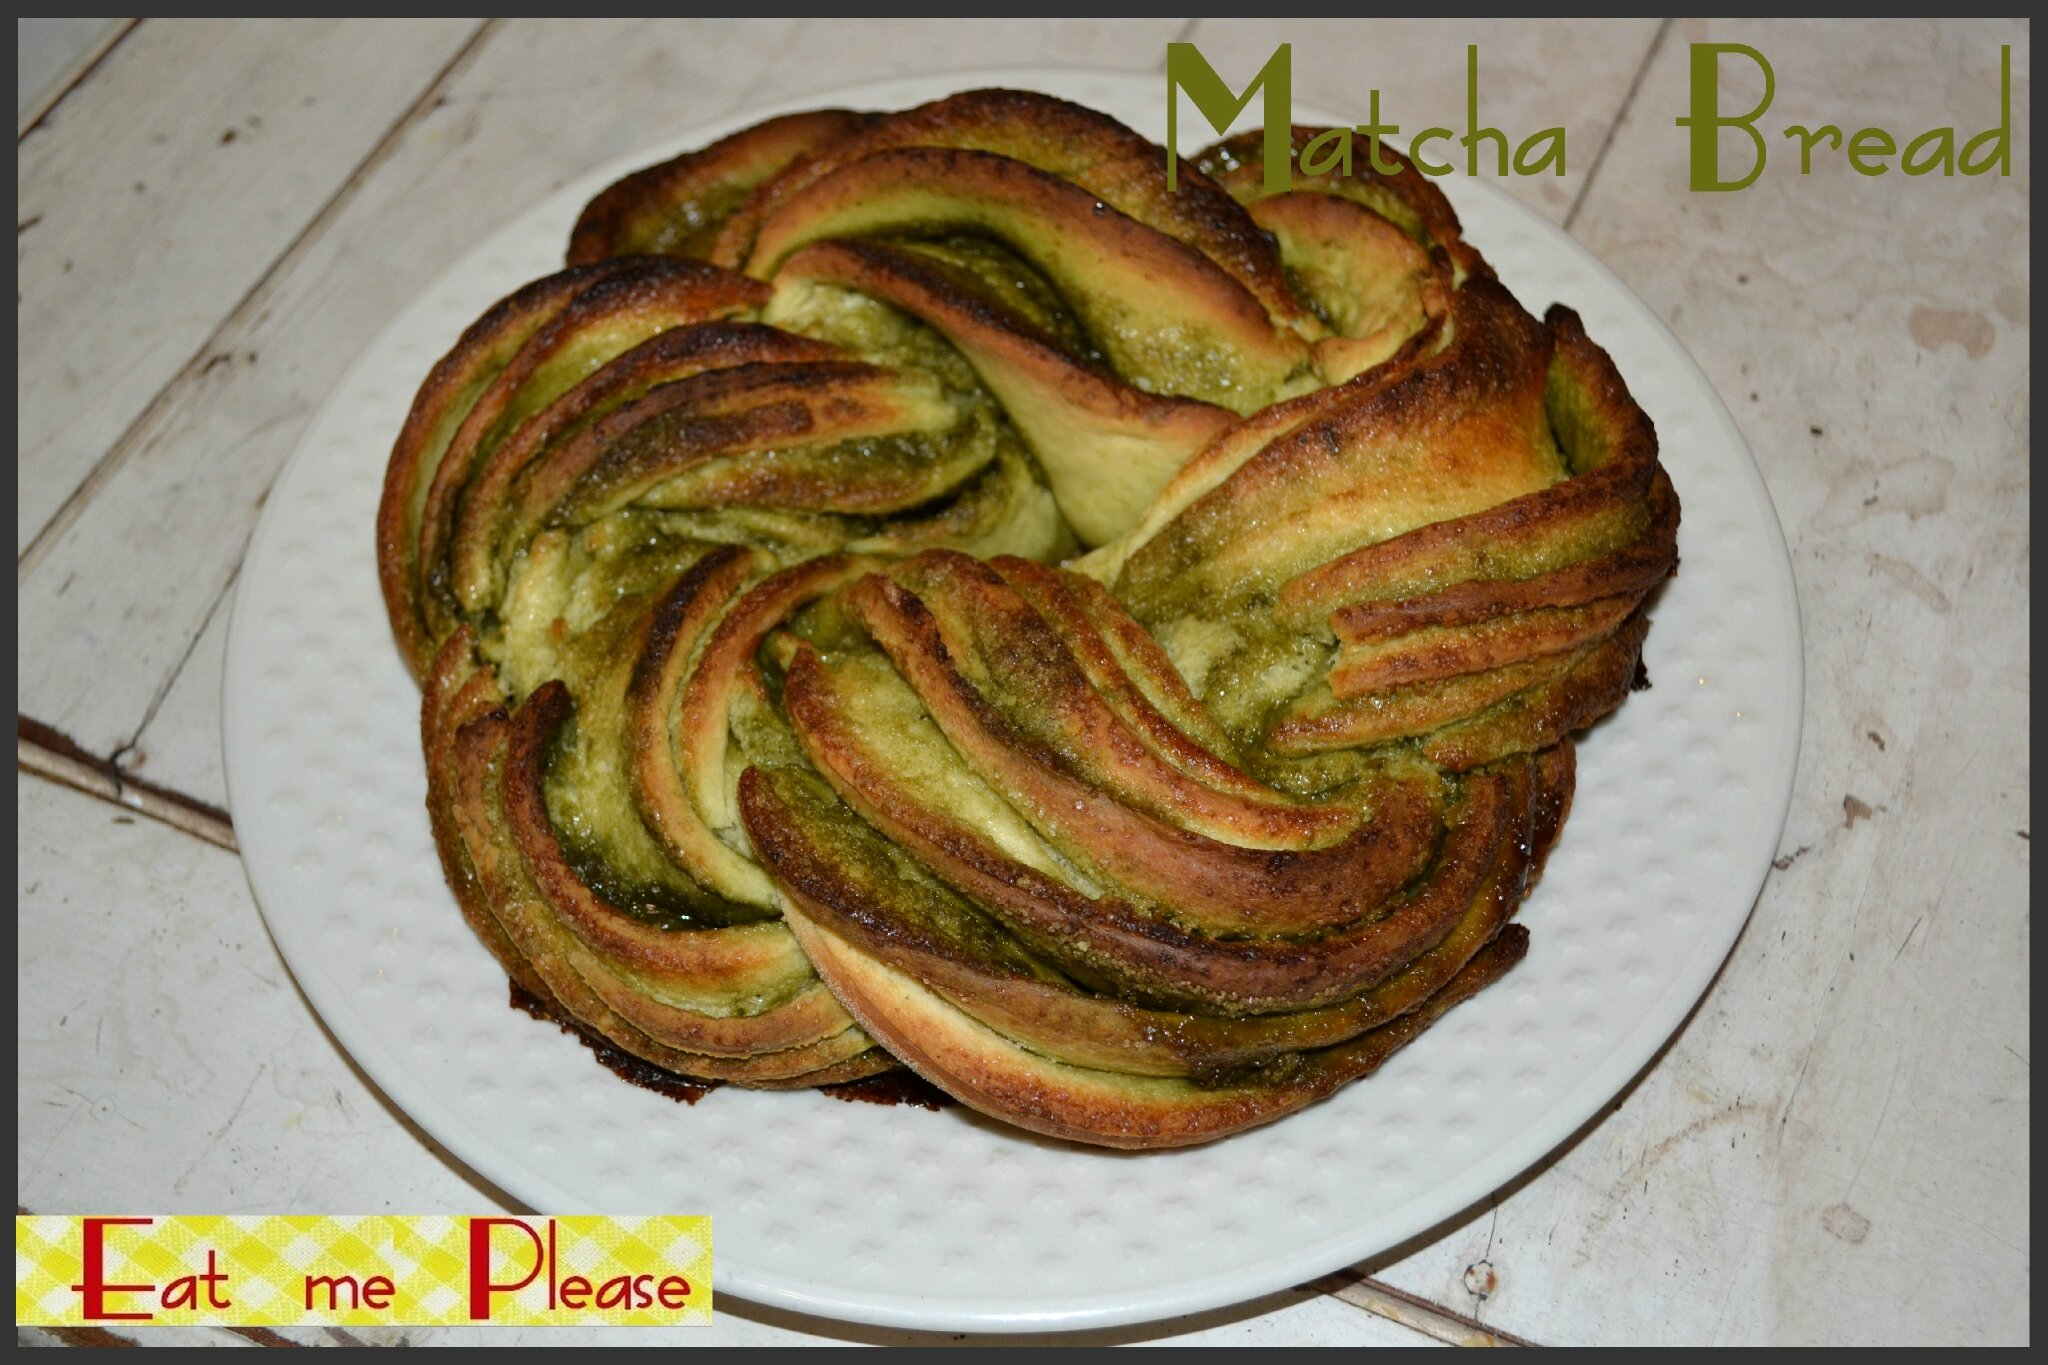 Twisted Matcha Bread